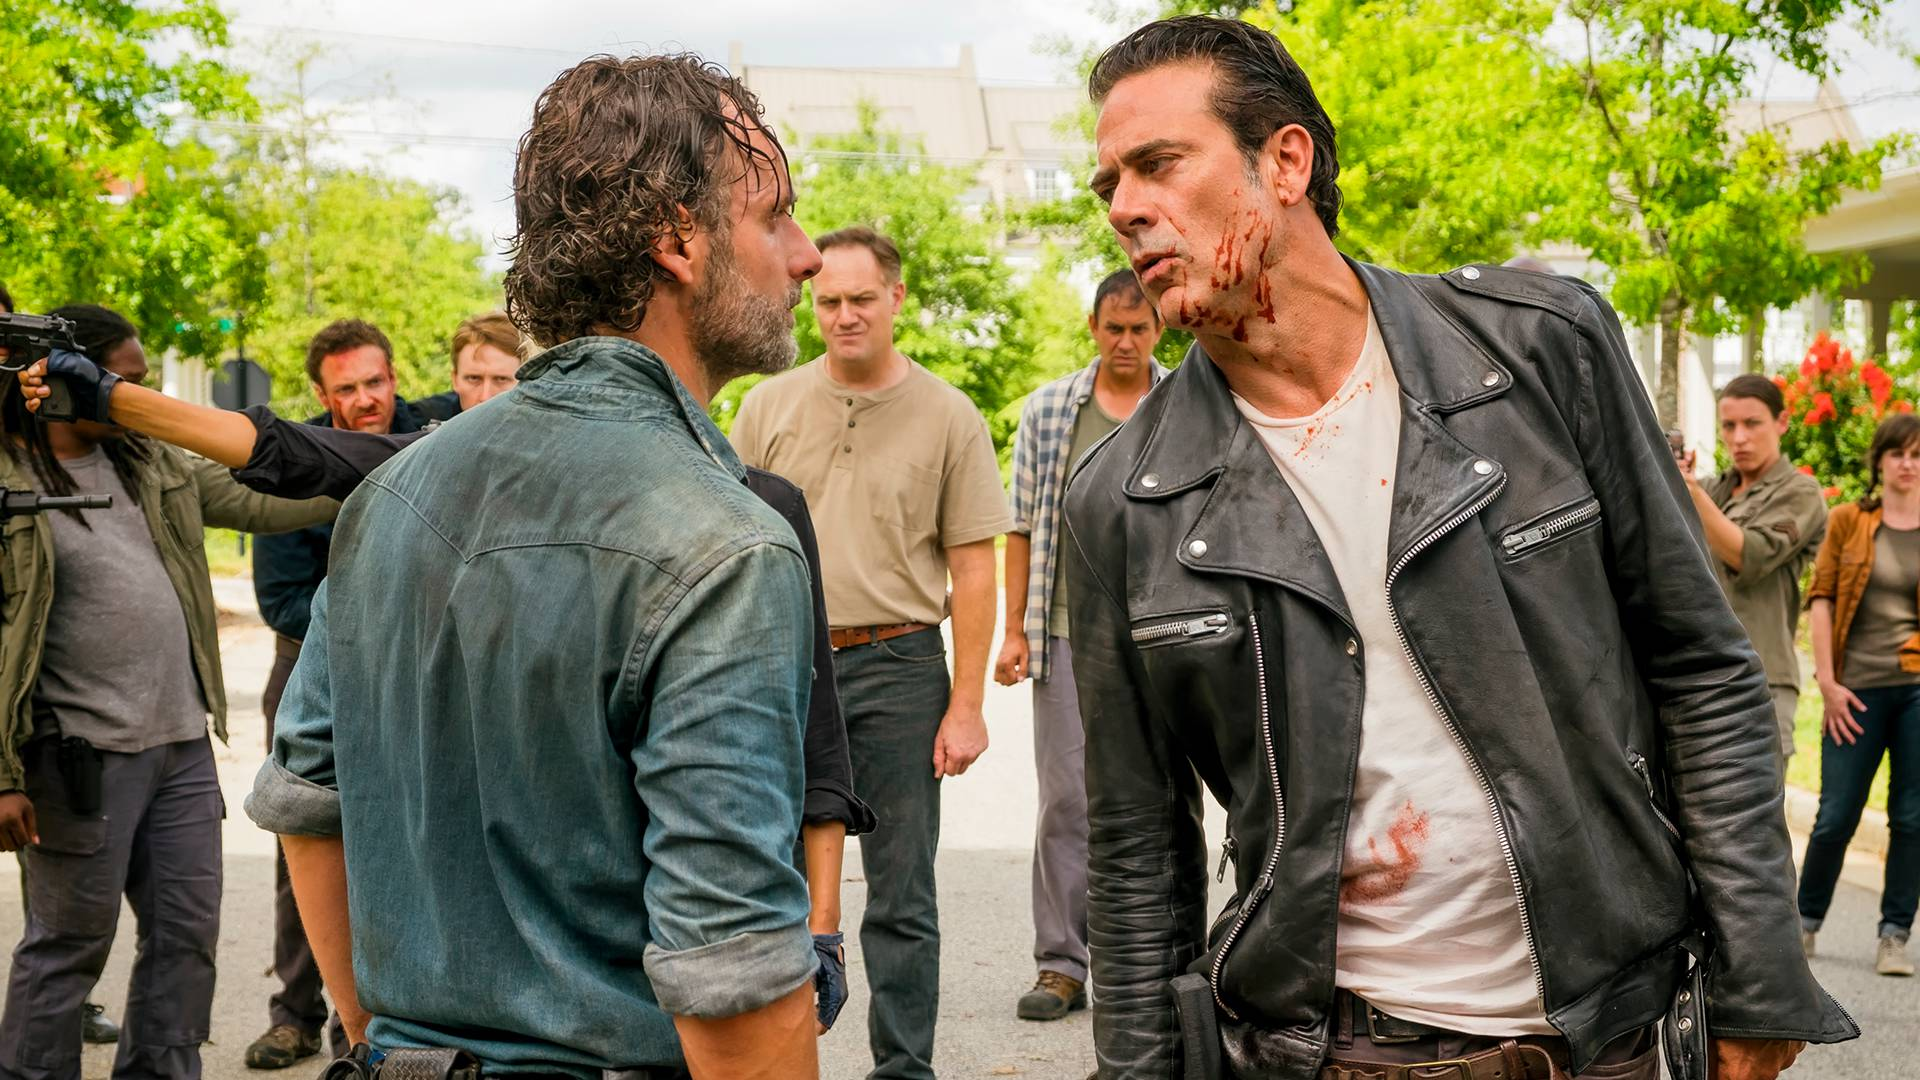 negan scraing eugene on walking dead